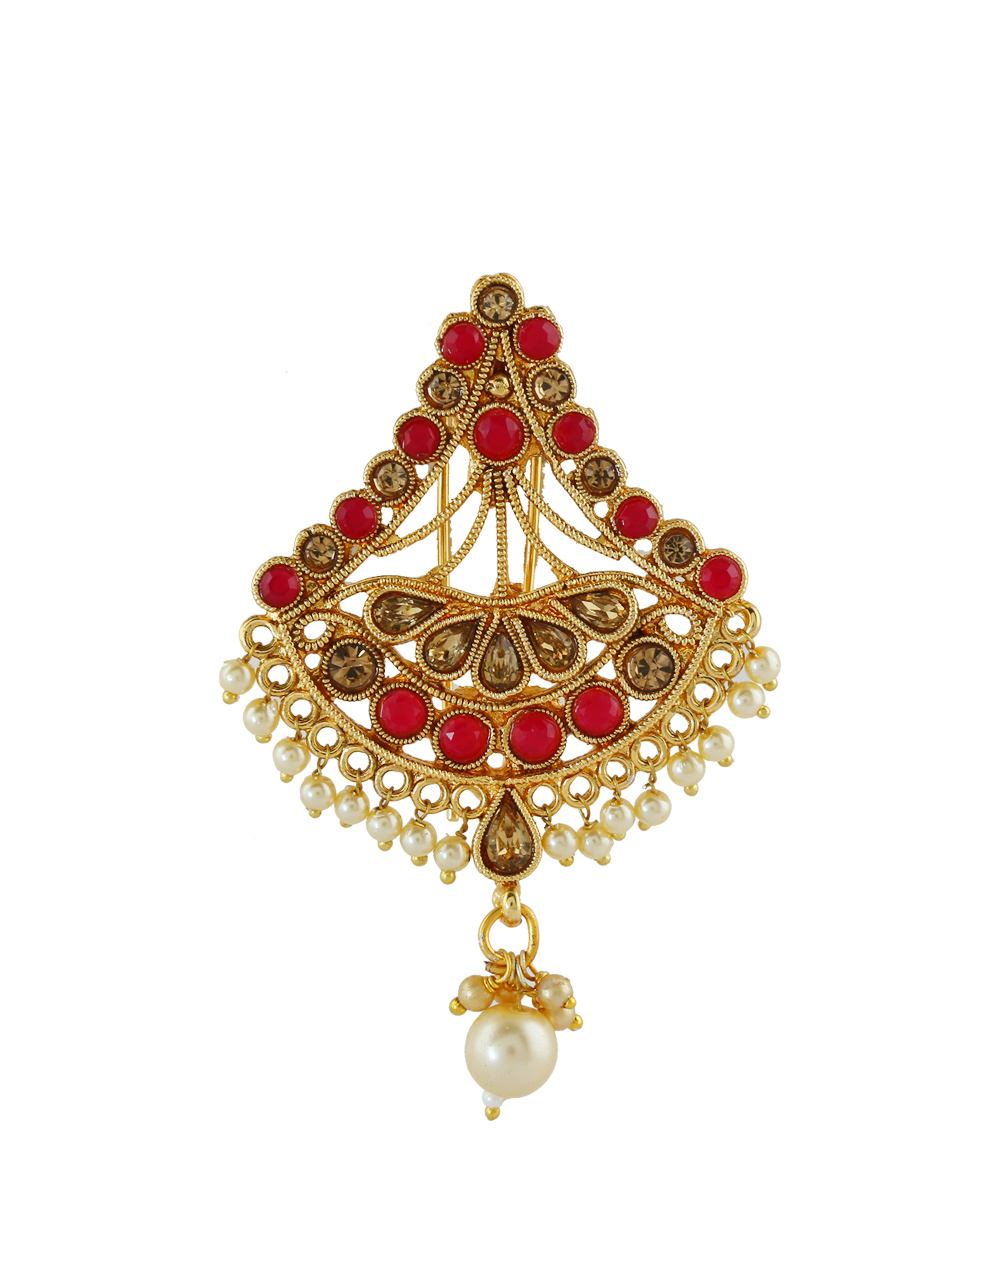 Red Colour Gold Finish Ambada Pin For Traditional Fancy